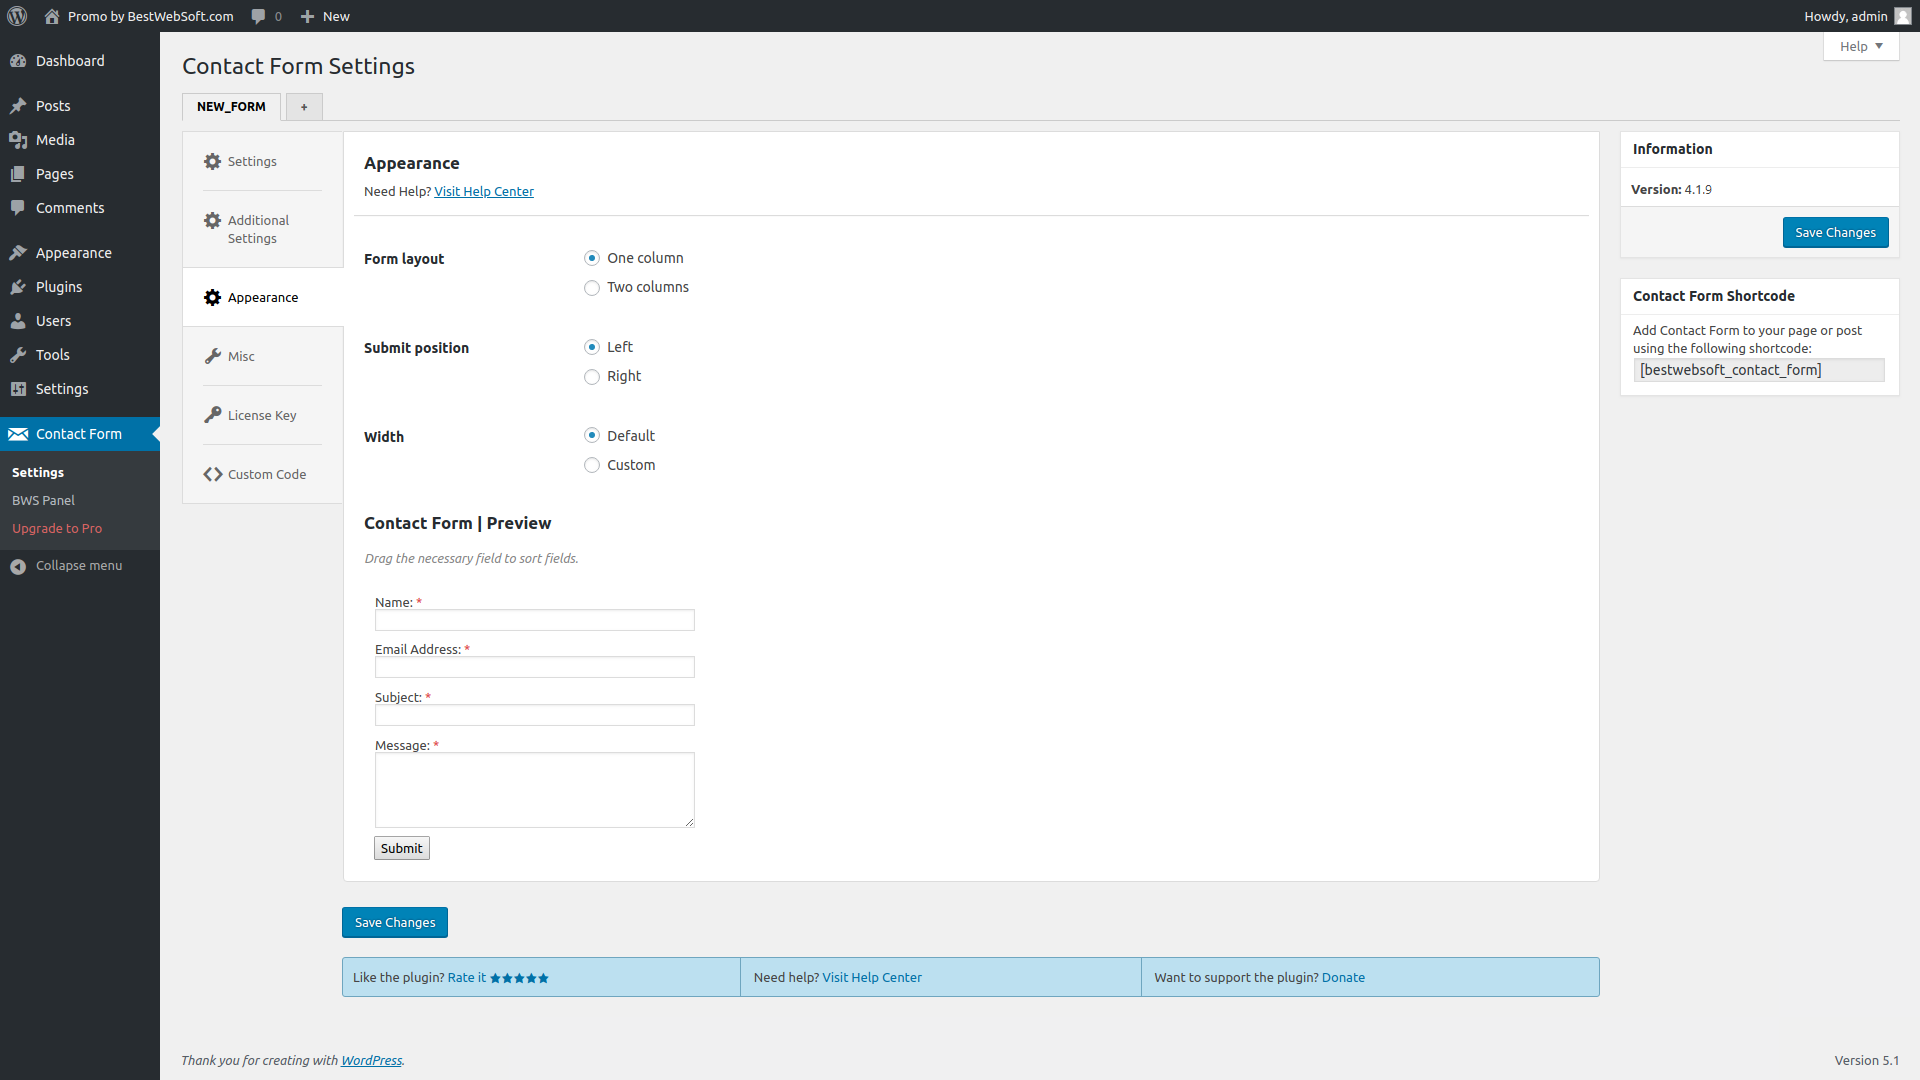 Contact Form appearance settings page.